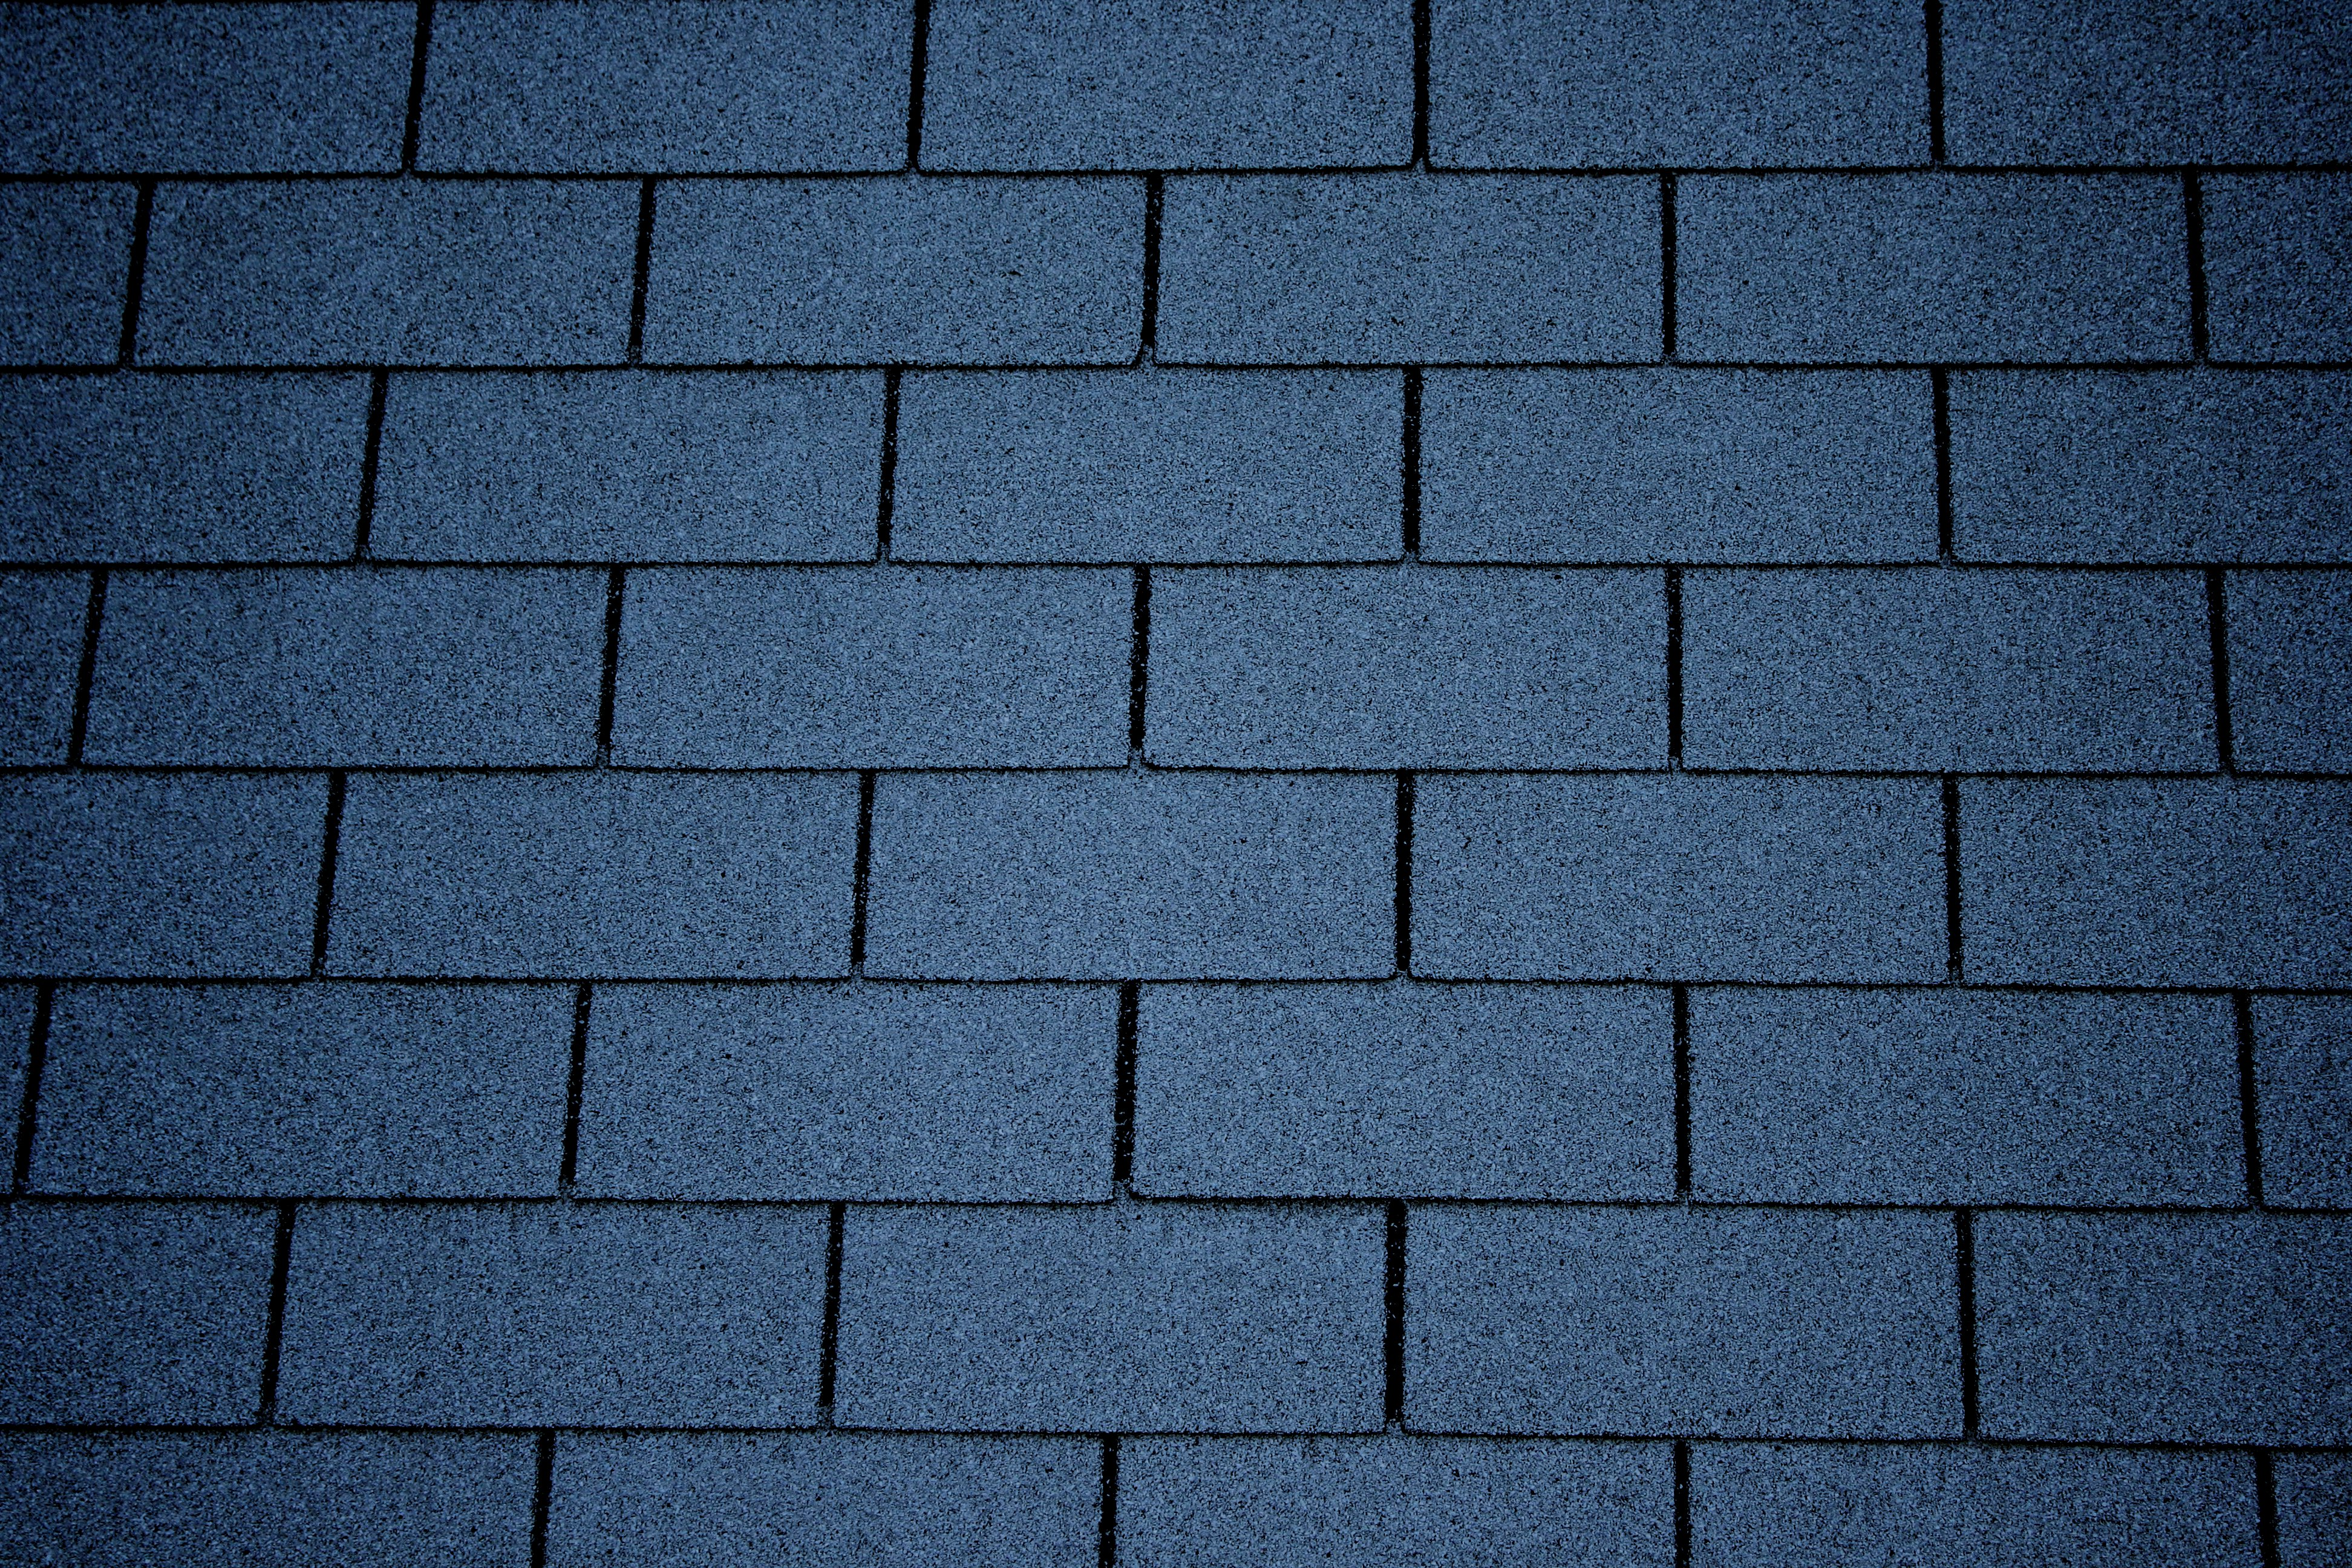 Dark blue wallpaper asphalt roof shingles texture dark blue wallpaper - Blue Asphalt Roof Shingles Texture